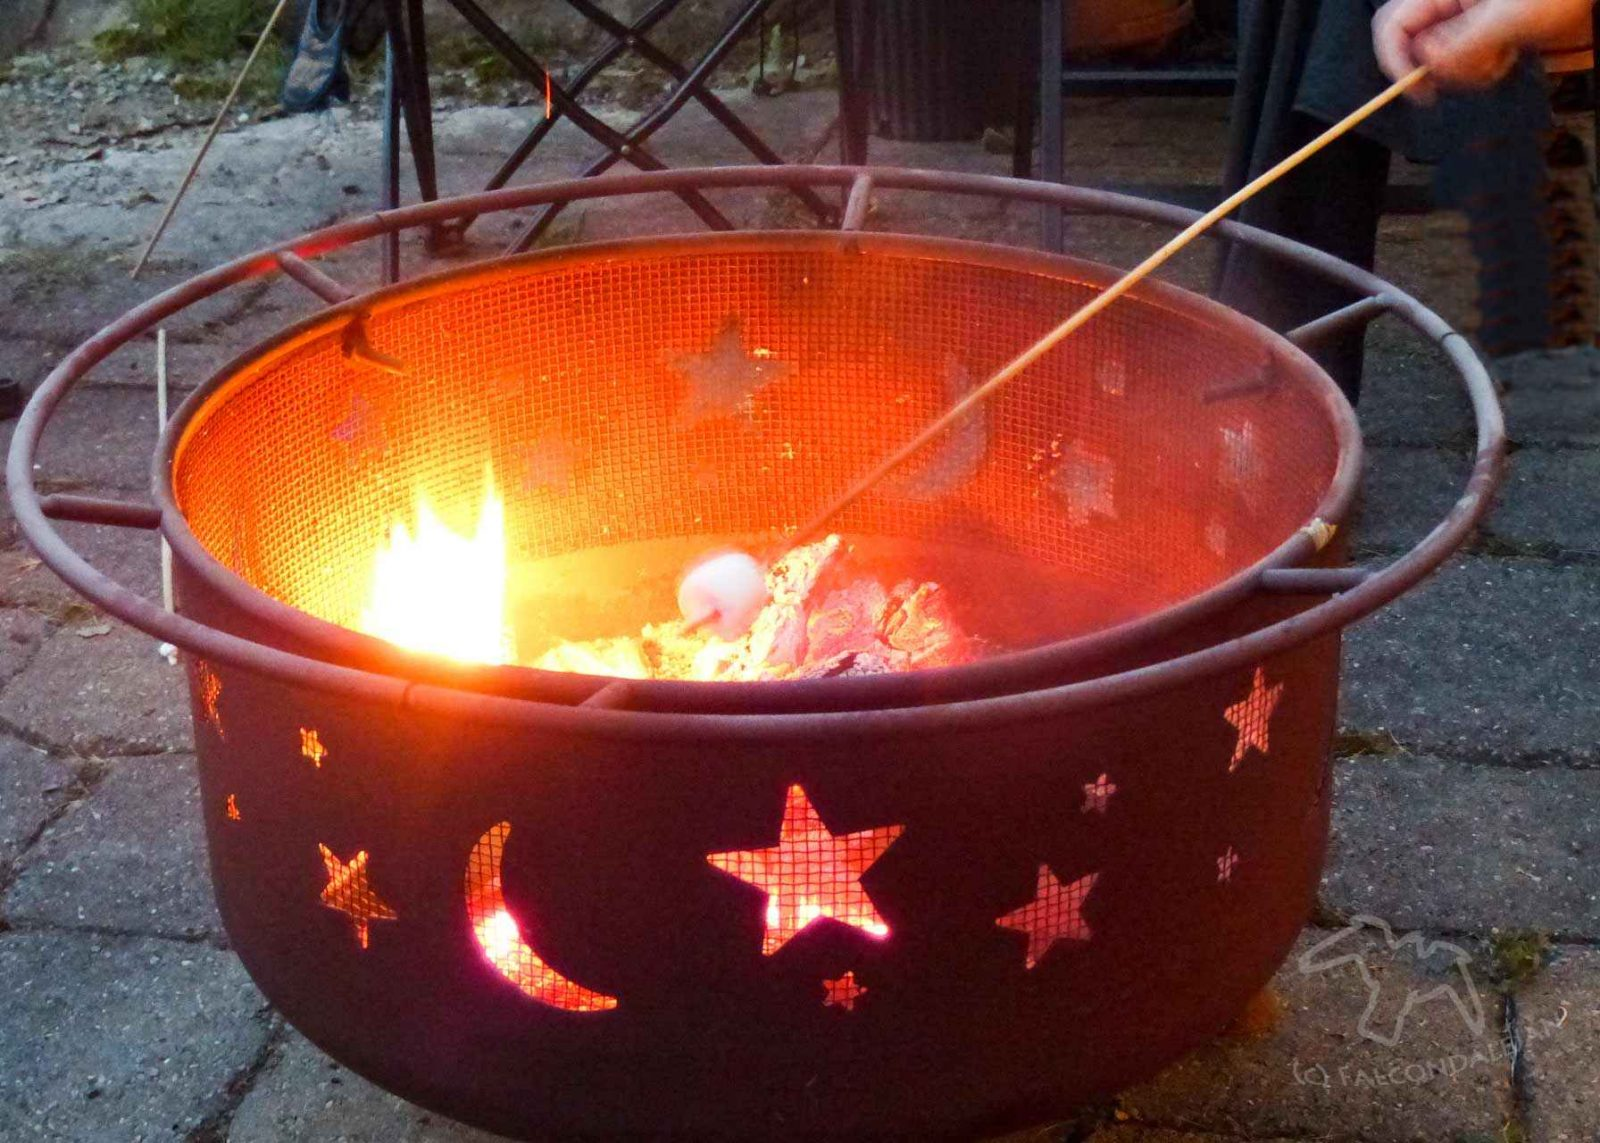 Toasting marshmallows over a garden fire pit. 5 ways to get your teenagers into the garden on Falcondale Life blog.